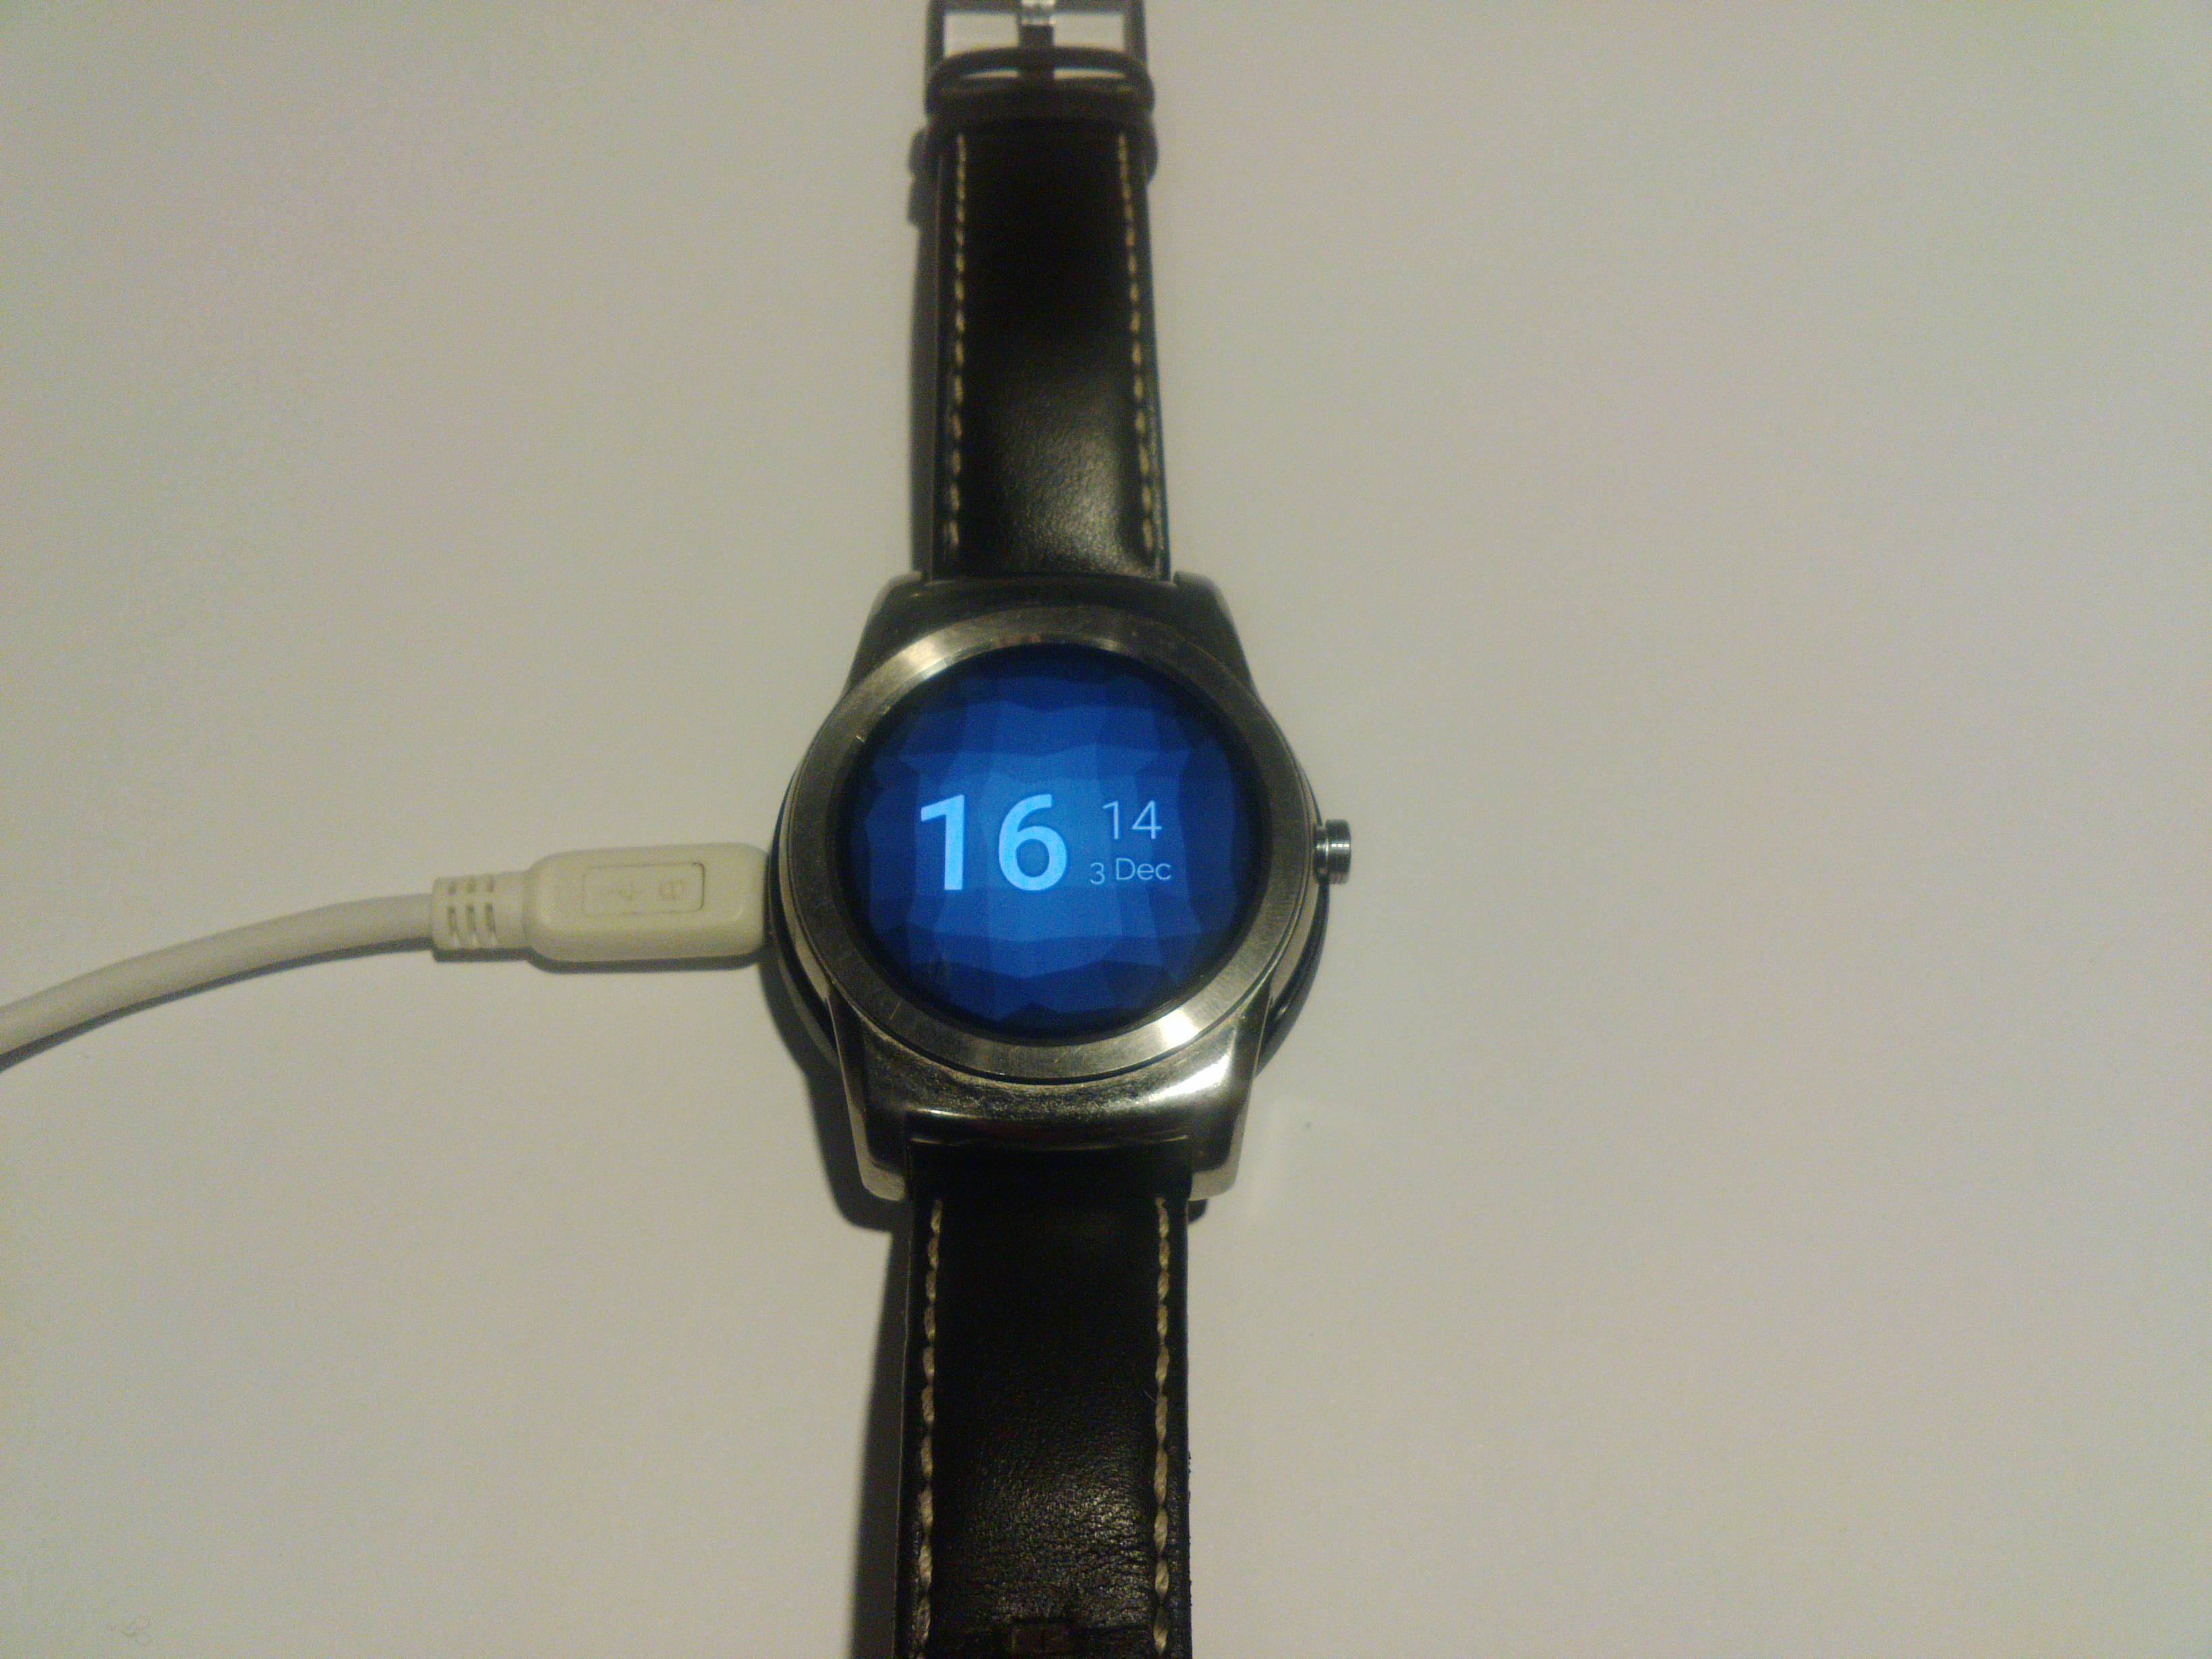 My watch in fastboot